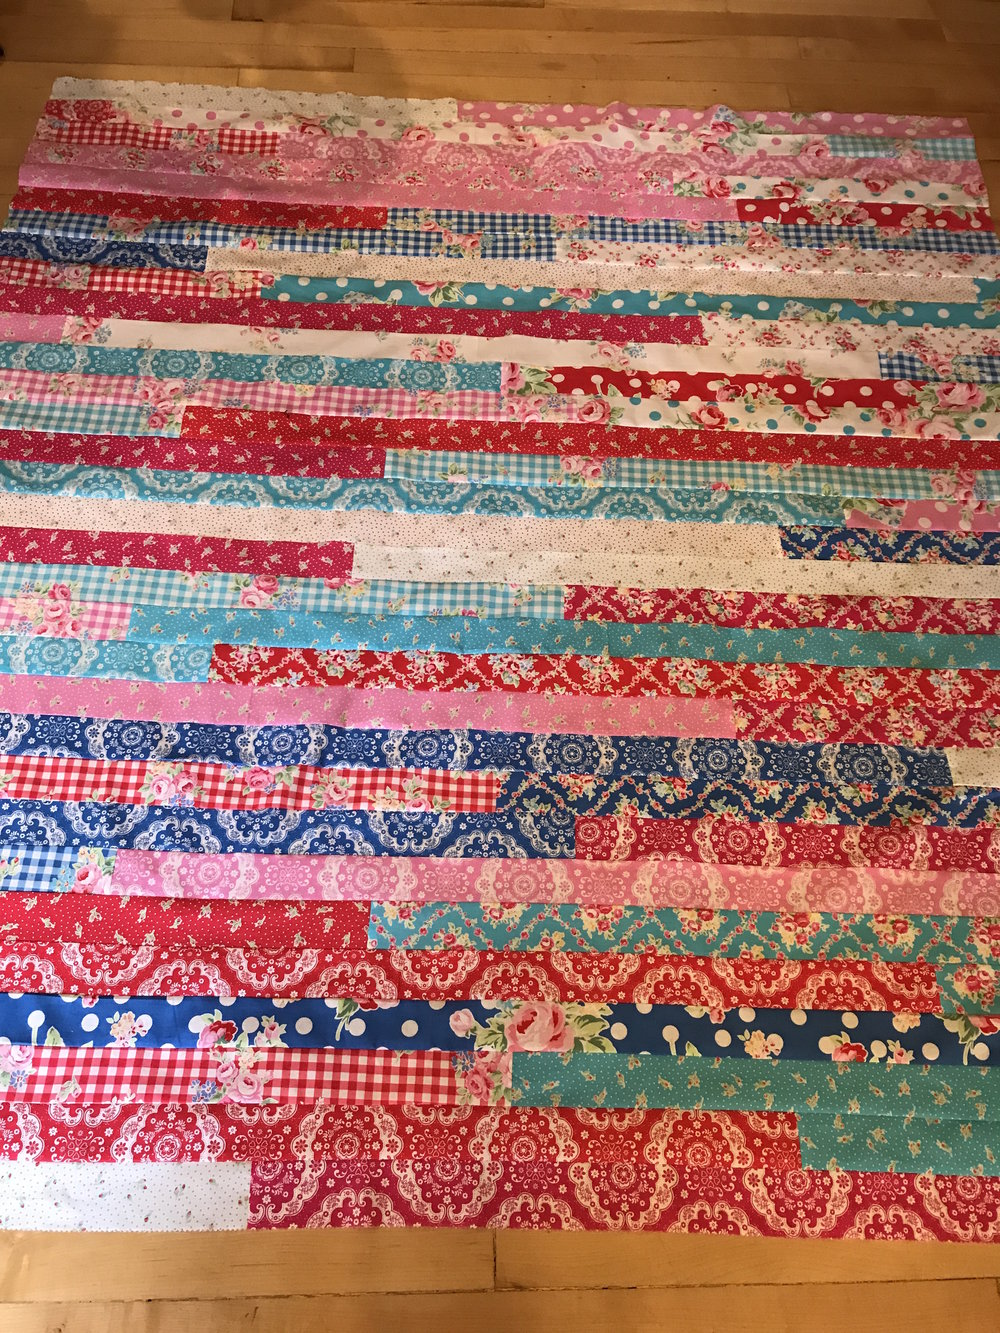 Have you ever made one of those jelly roll races quilt?